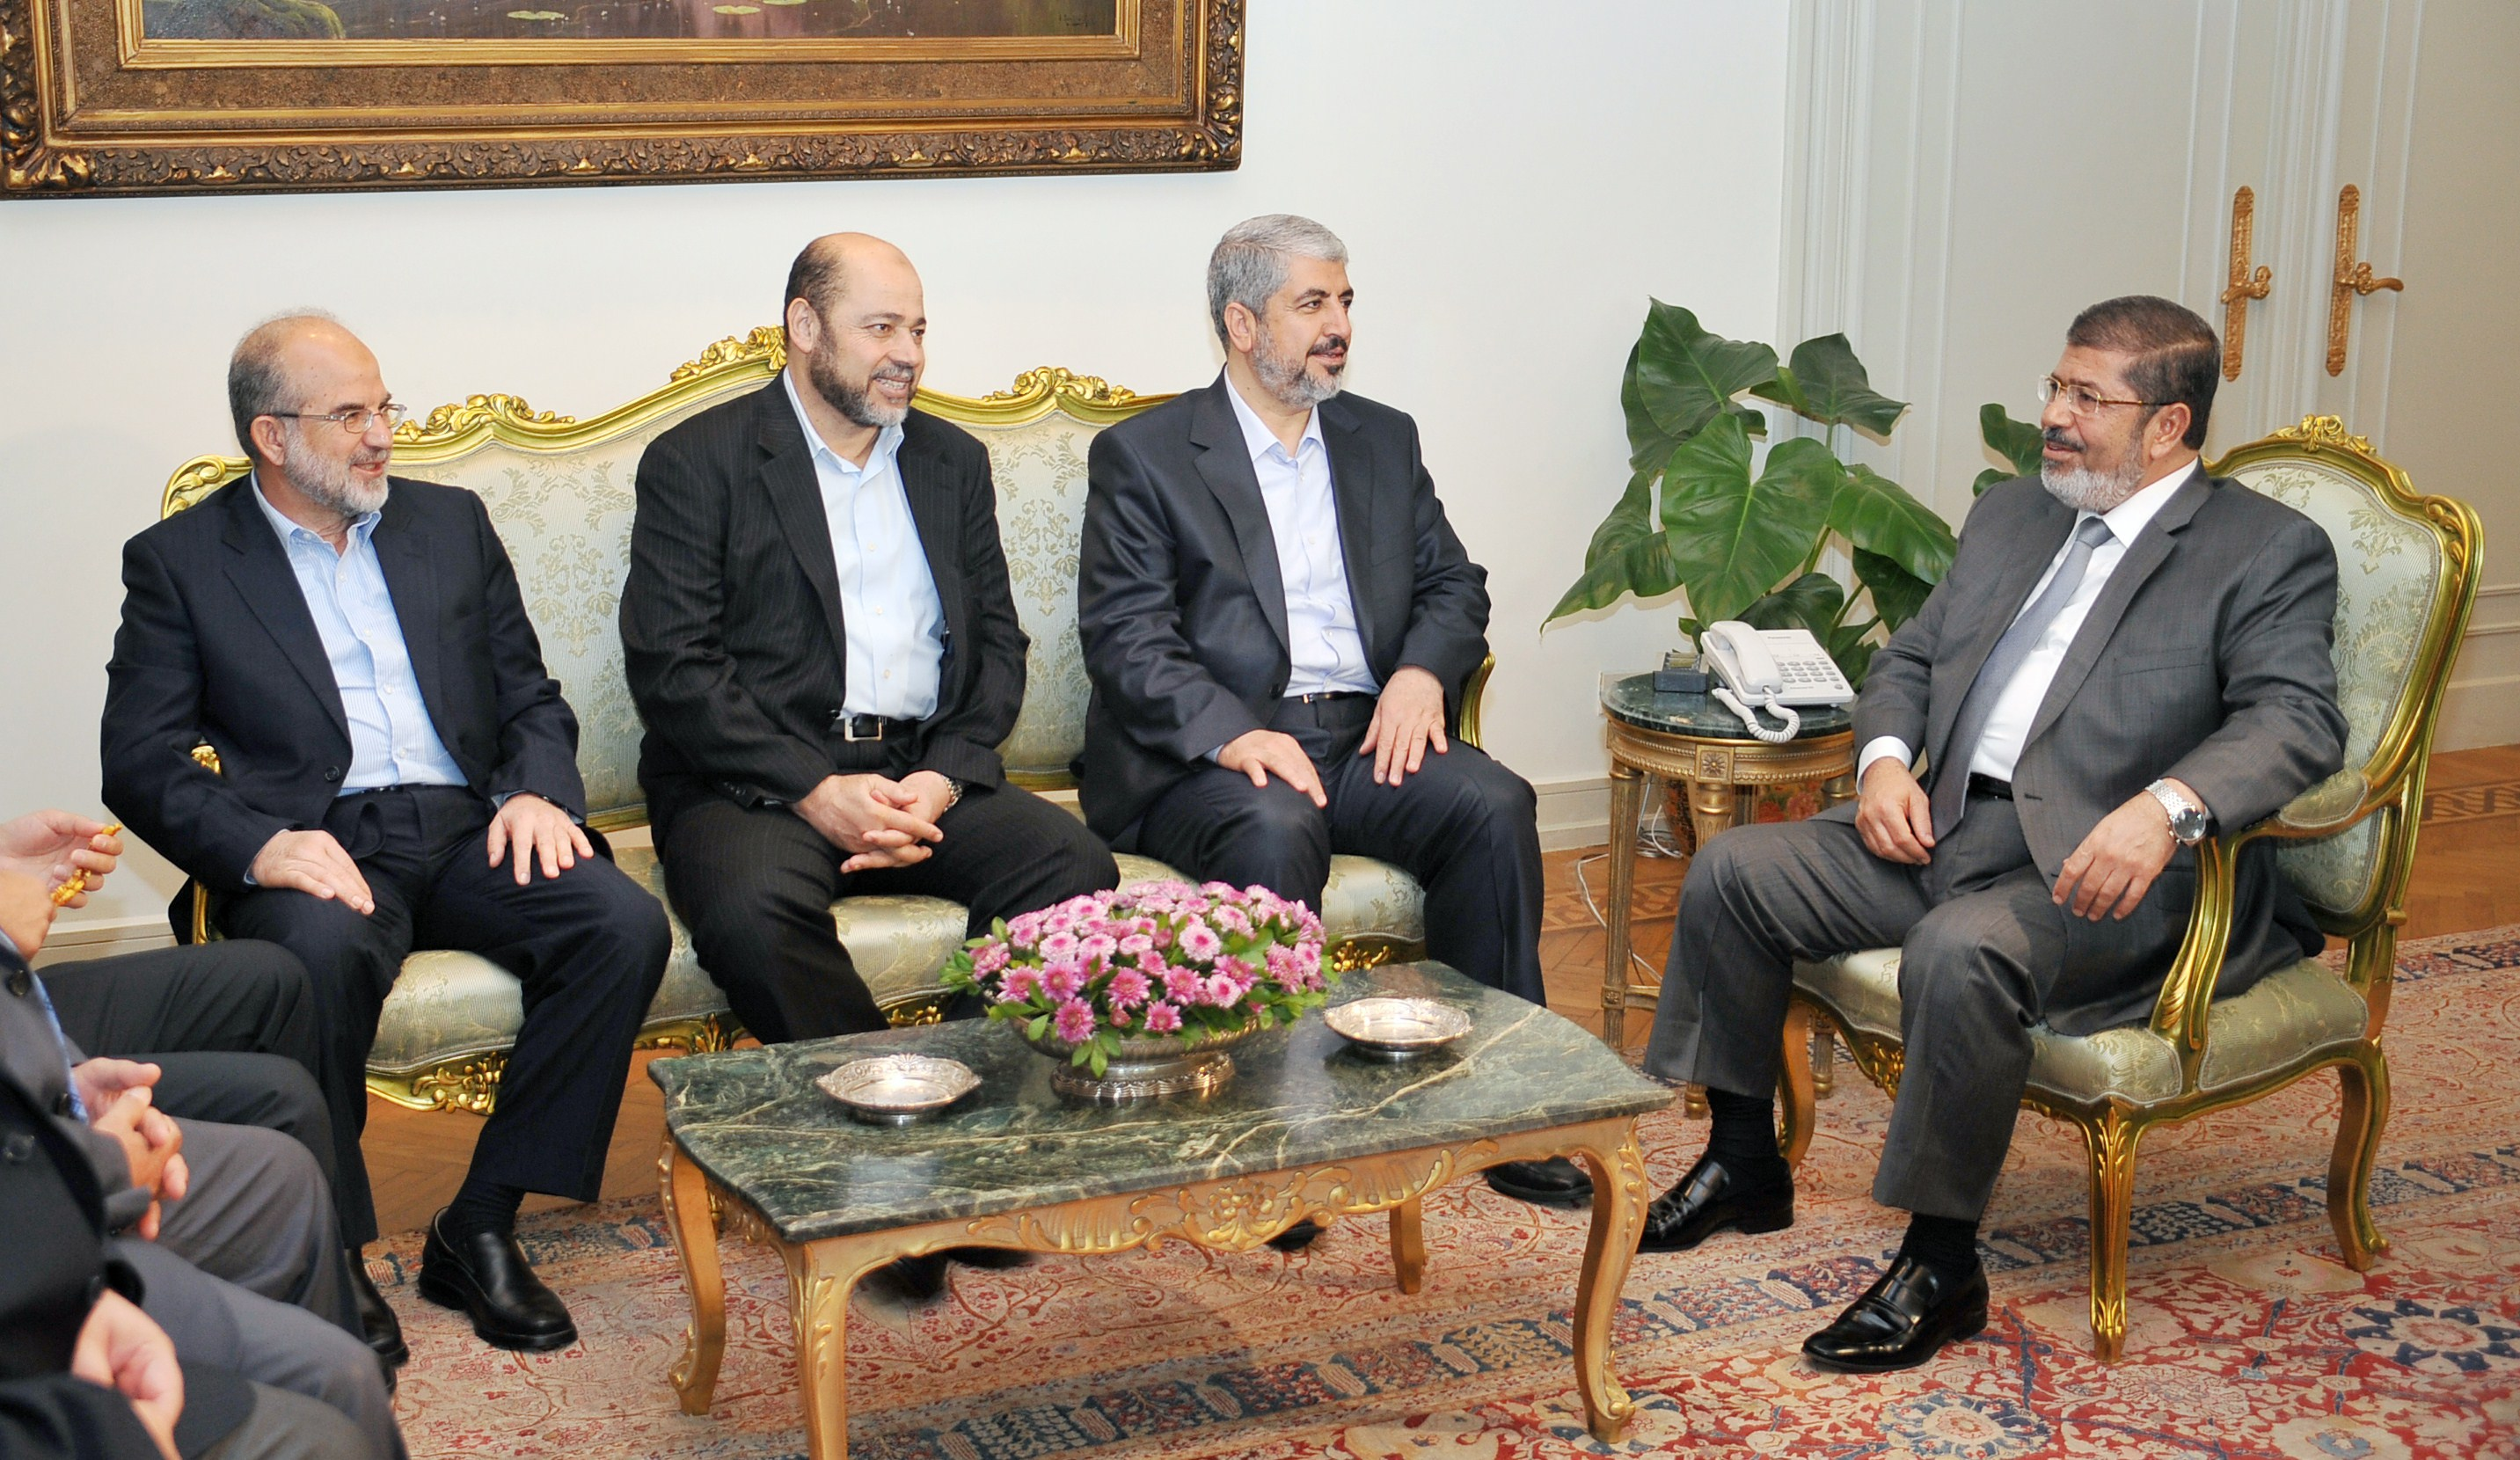 A handout picture released by the Egyptian presidency shows Egyptian President Mohamed Morsy (R) meeting with Palestinian Hamas political bureau chief Khaled Misha'al (2nd R) at the presidential palace in Cairo on 19 July 19 2012 (photo: AFP PHOTO/EGYPTIAN PRESIDENCY)